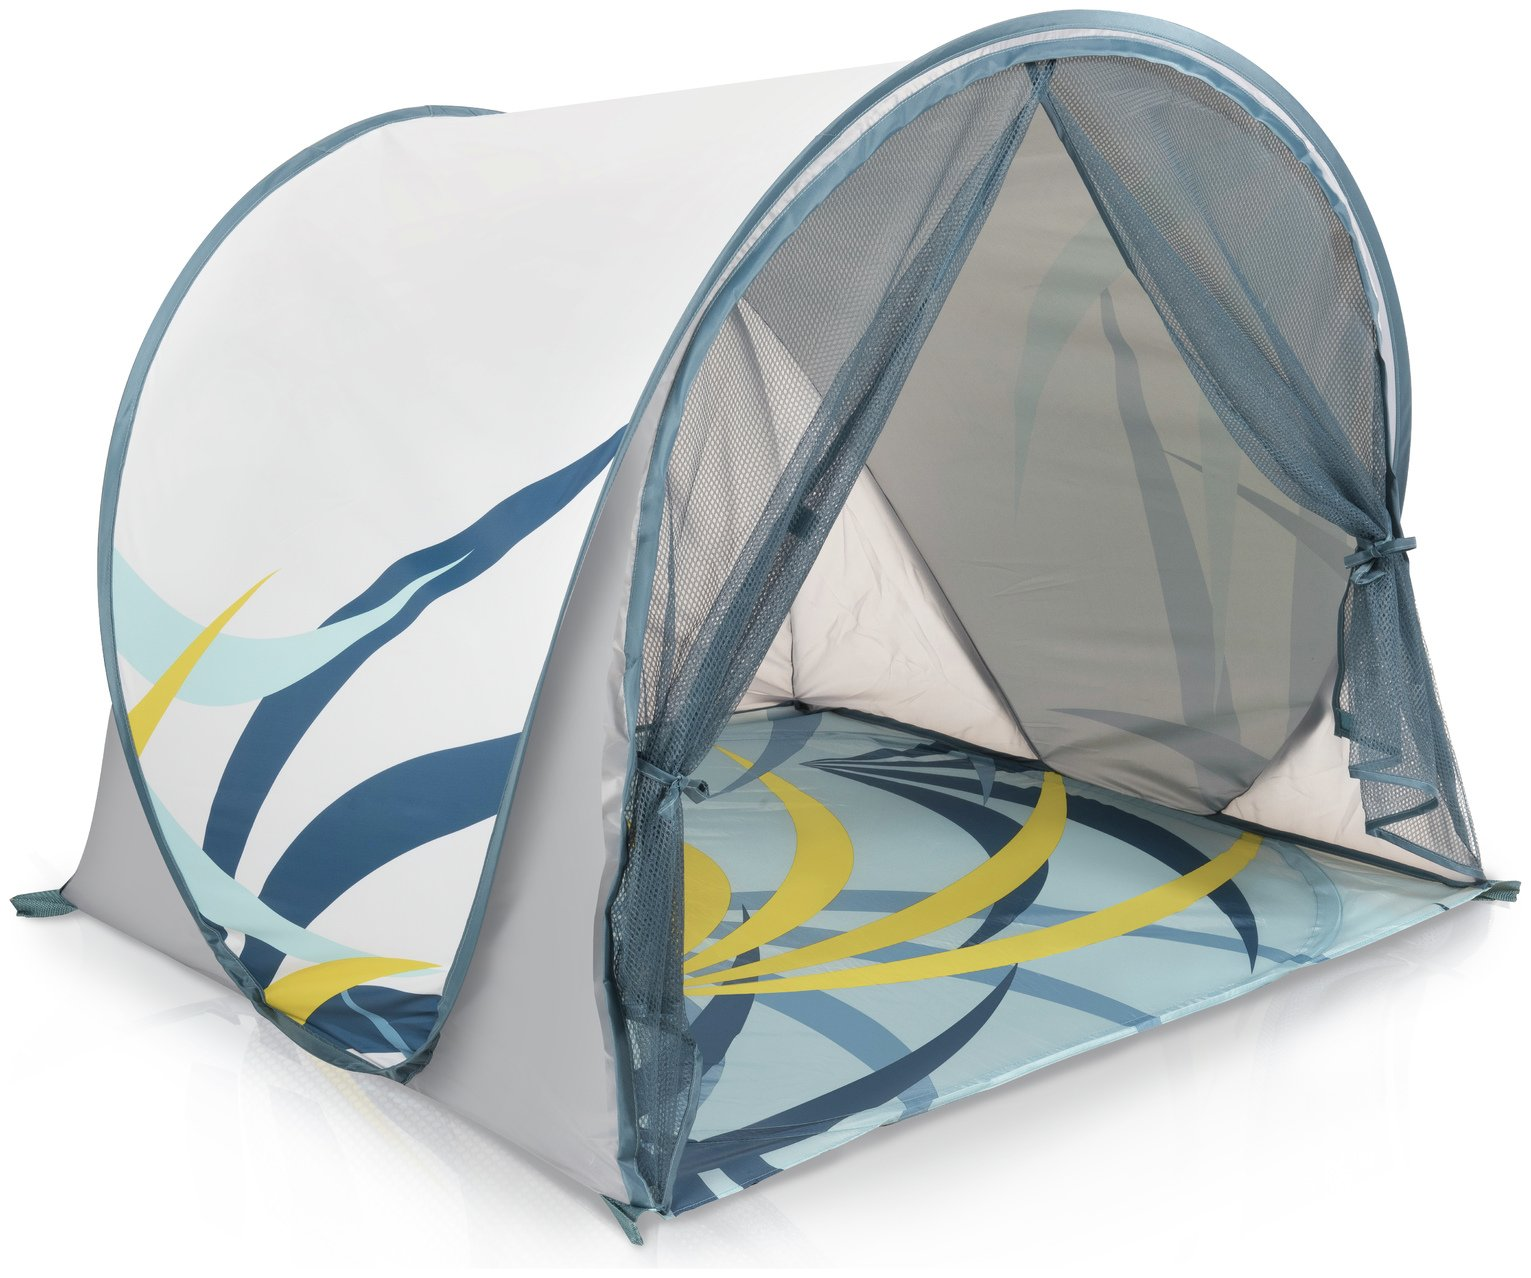 Image of Babymoov 1 Man 1 Room Anti-UV Tent - Tropical